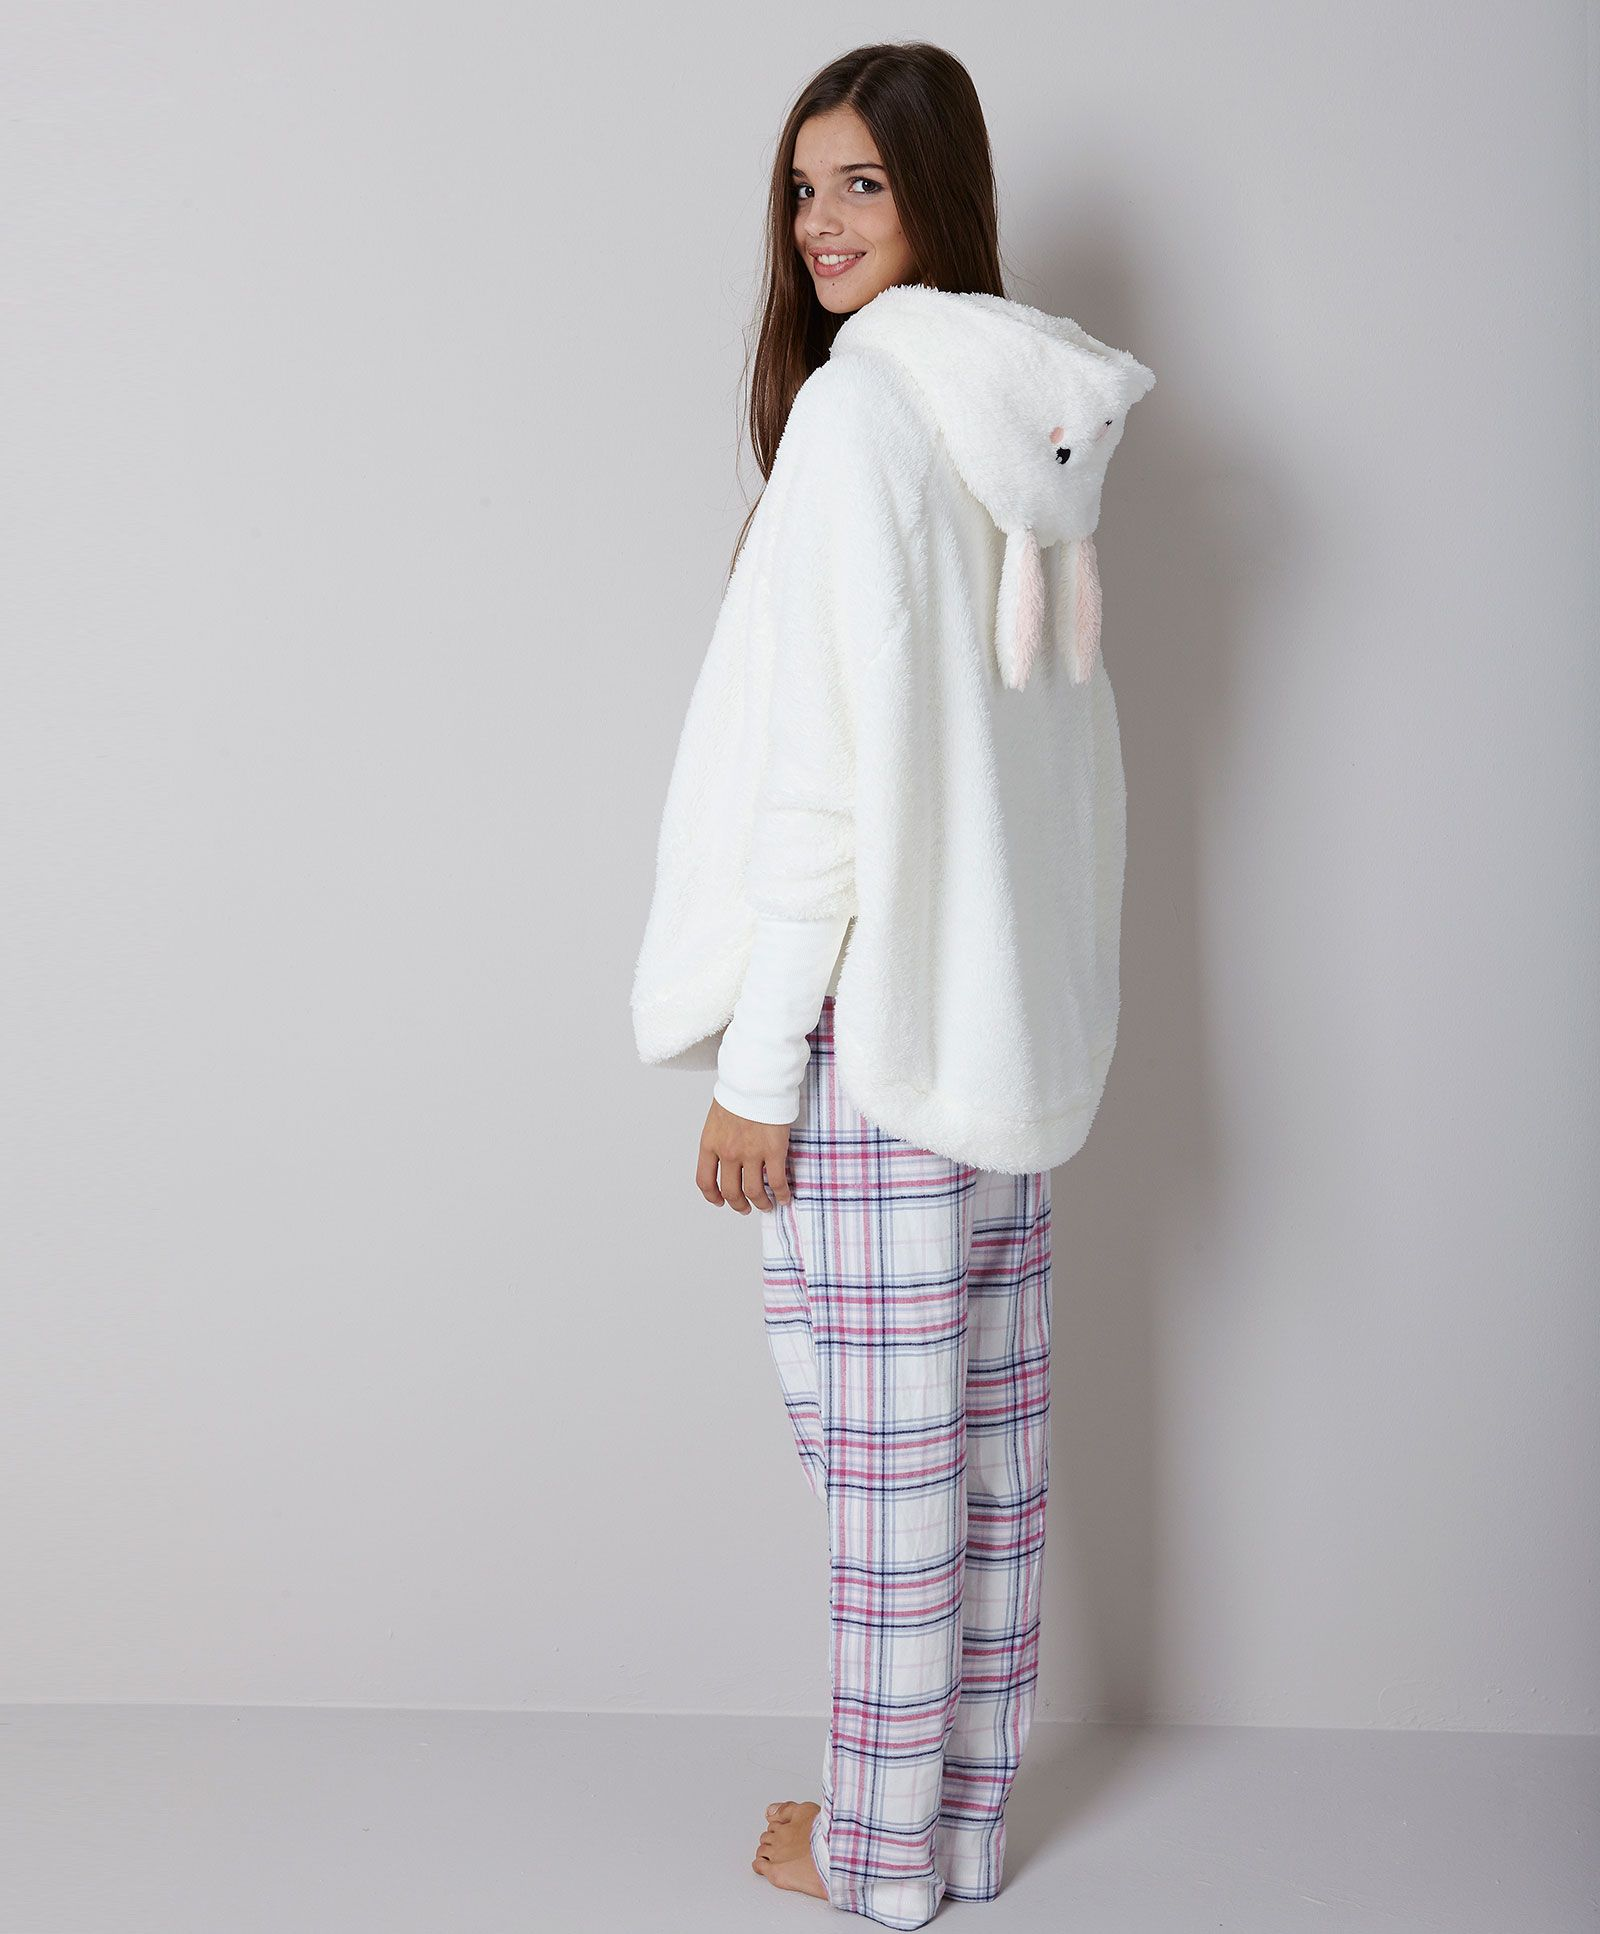 08f32226df Rabbit poncho - null Spring Summer 2017 trends in women fashion at Oysho  online. Find lingerie